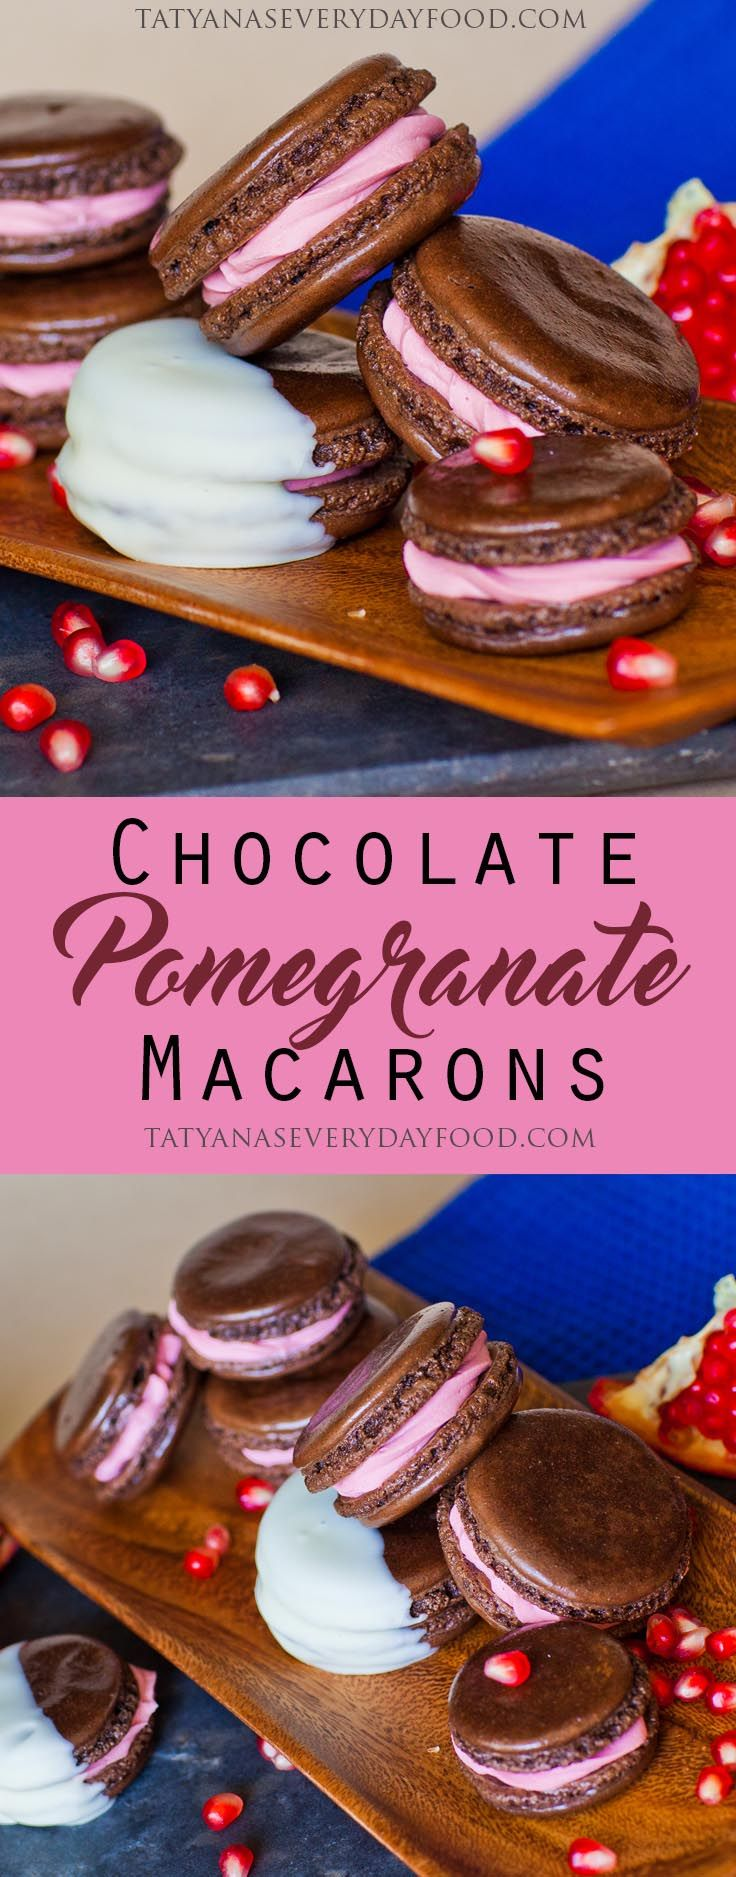 These chocolate pomegranate macarons are the perfect combination of flavor! The sweet, chocolate-y almond shell compliments the tart pomegranate butter cream, creating an unforgettable treat! View Recipe Link